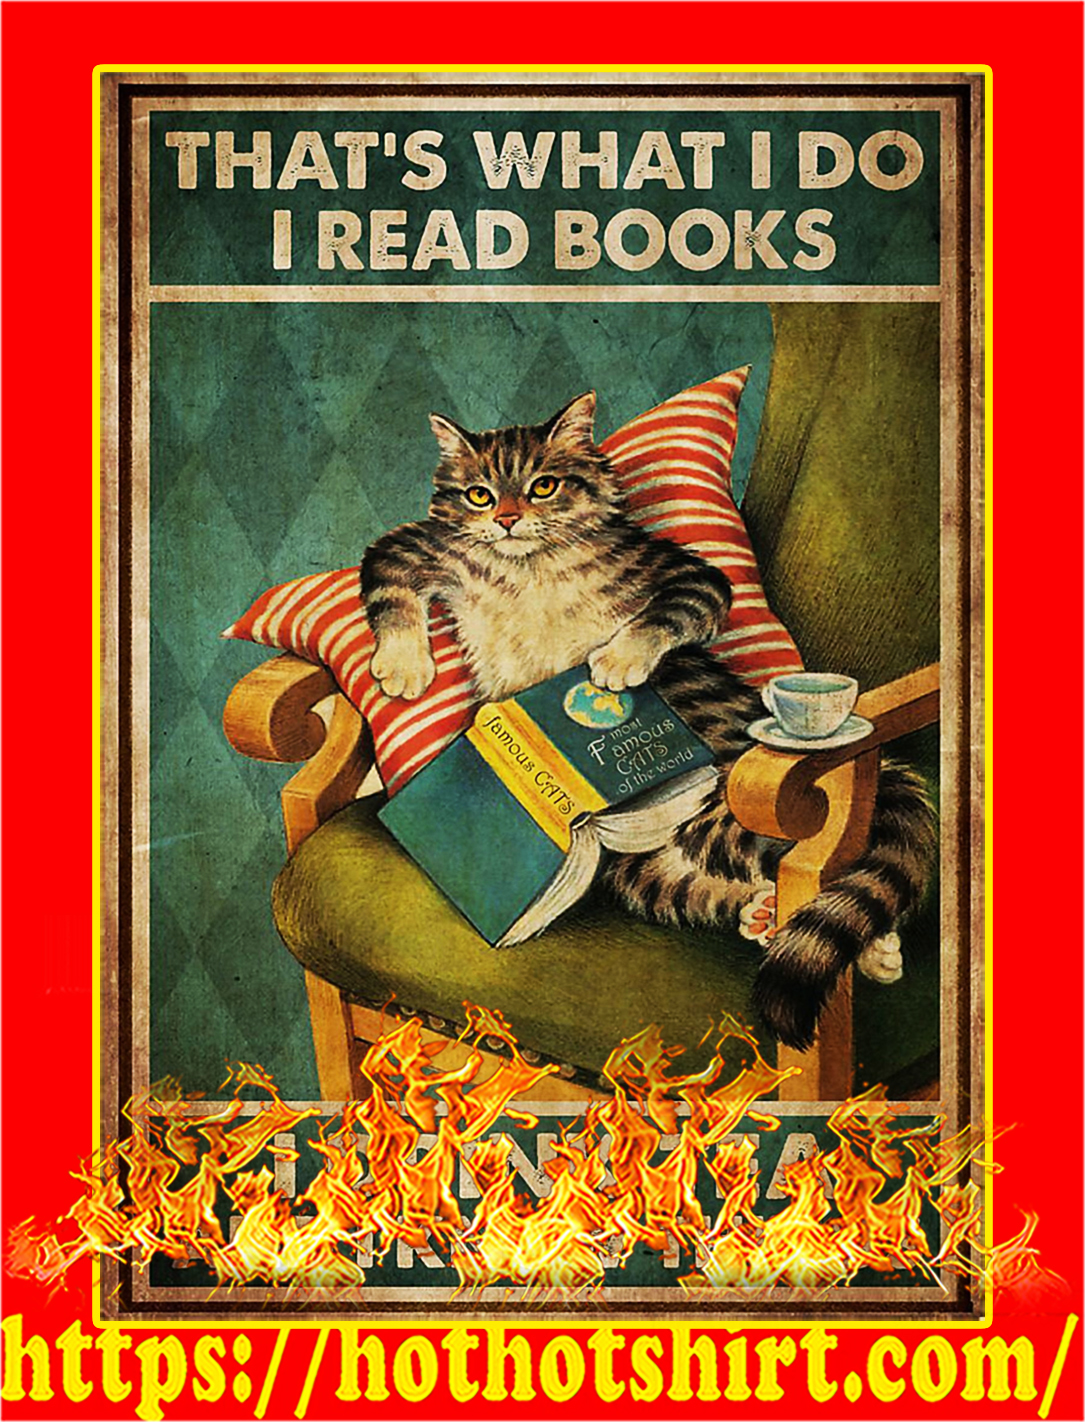 Cat That's what I do I read books poster - A1